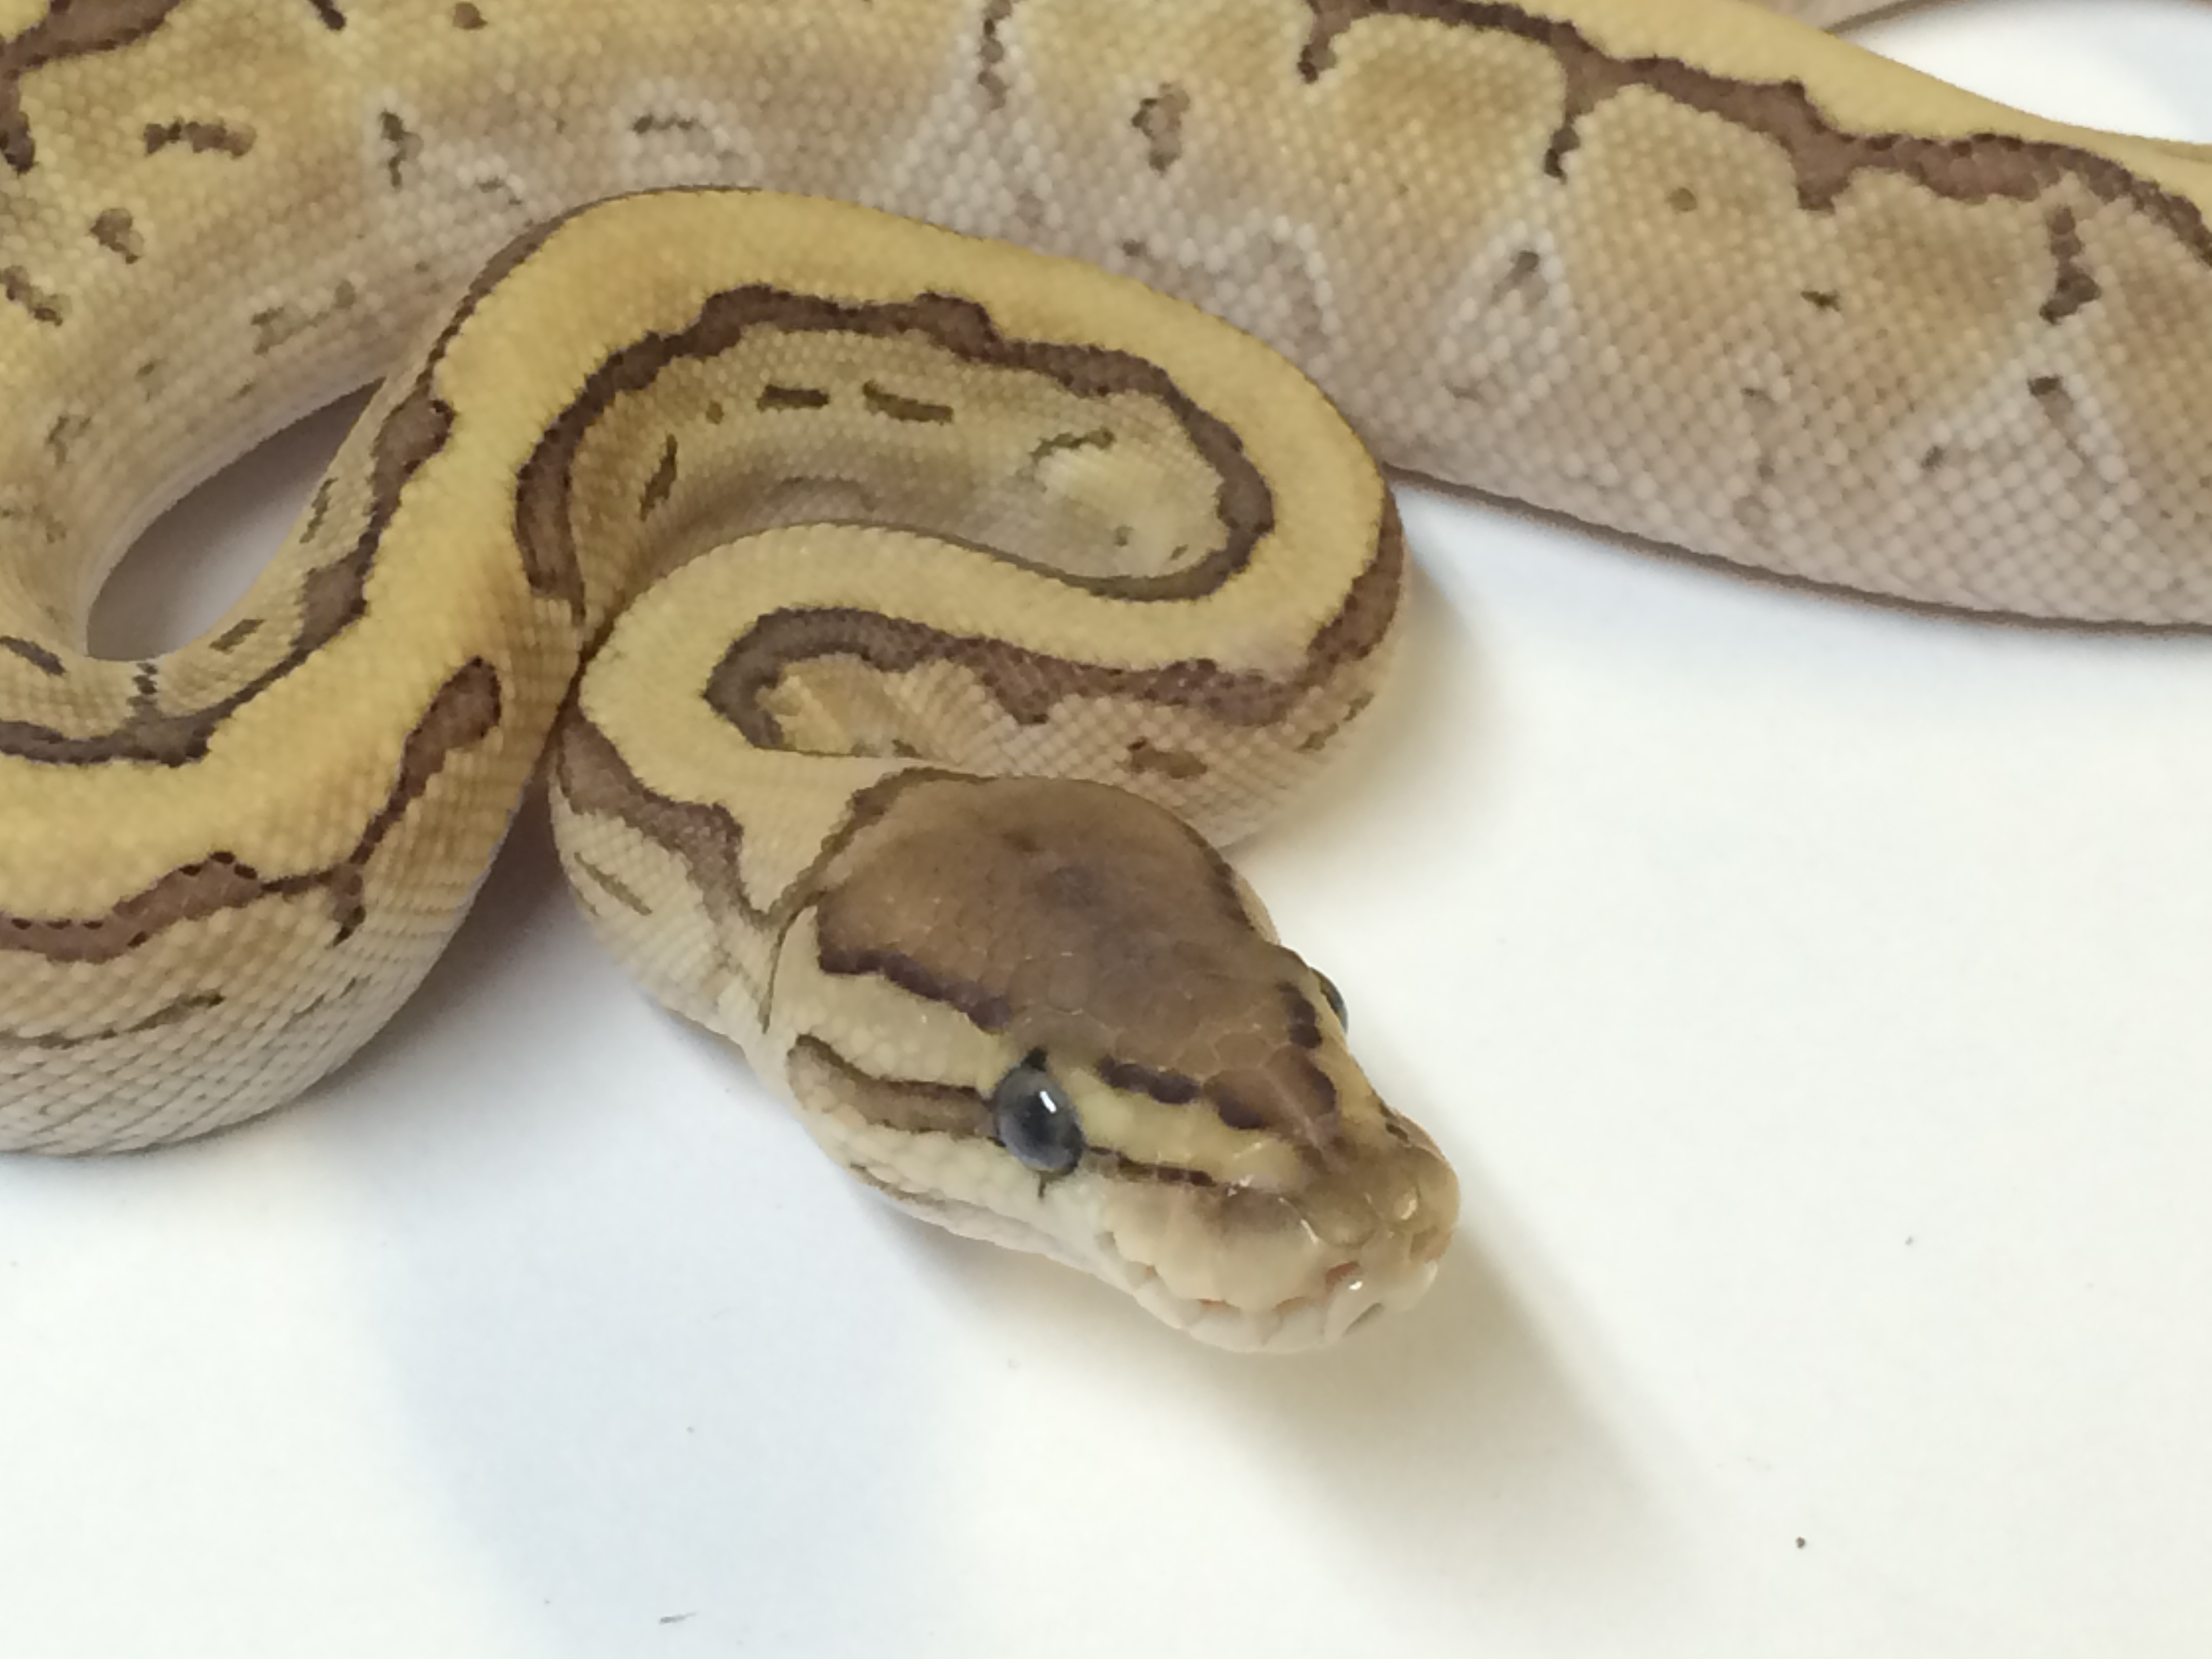 78+ Baby Burmese Python For Sale - Photo Posted By Sharkman20, Baby